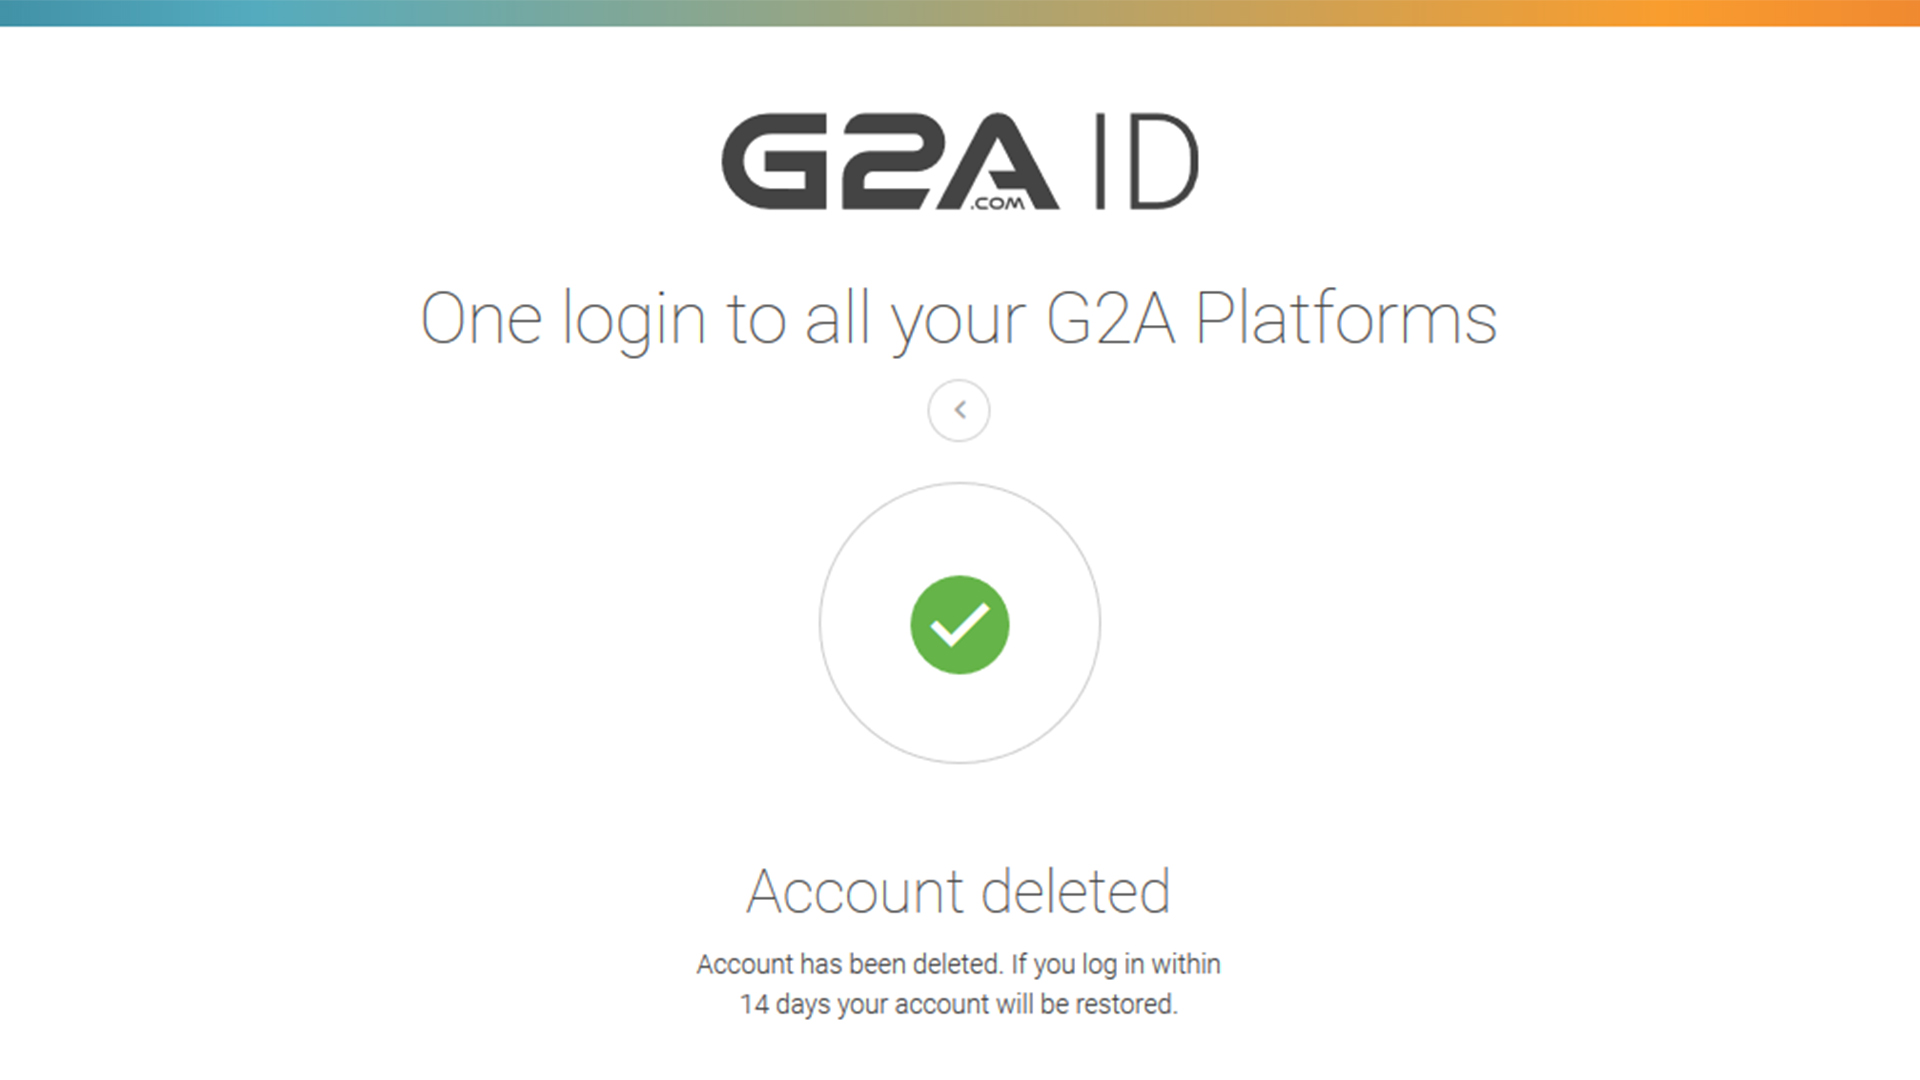 g2a has implemented a